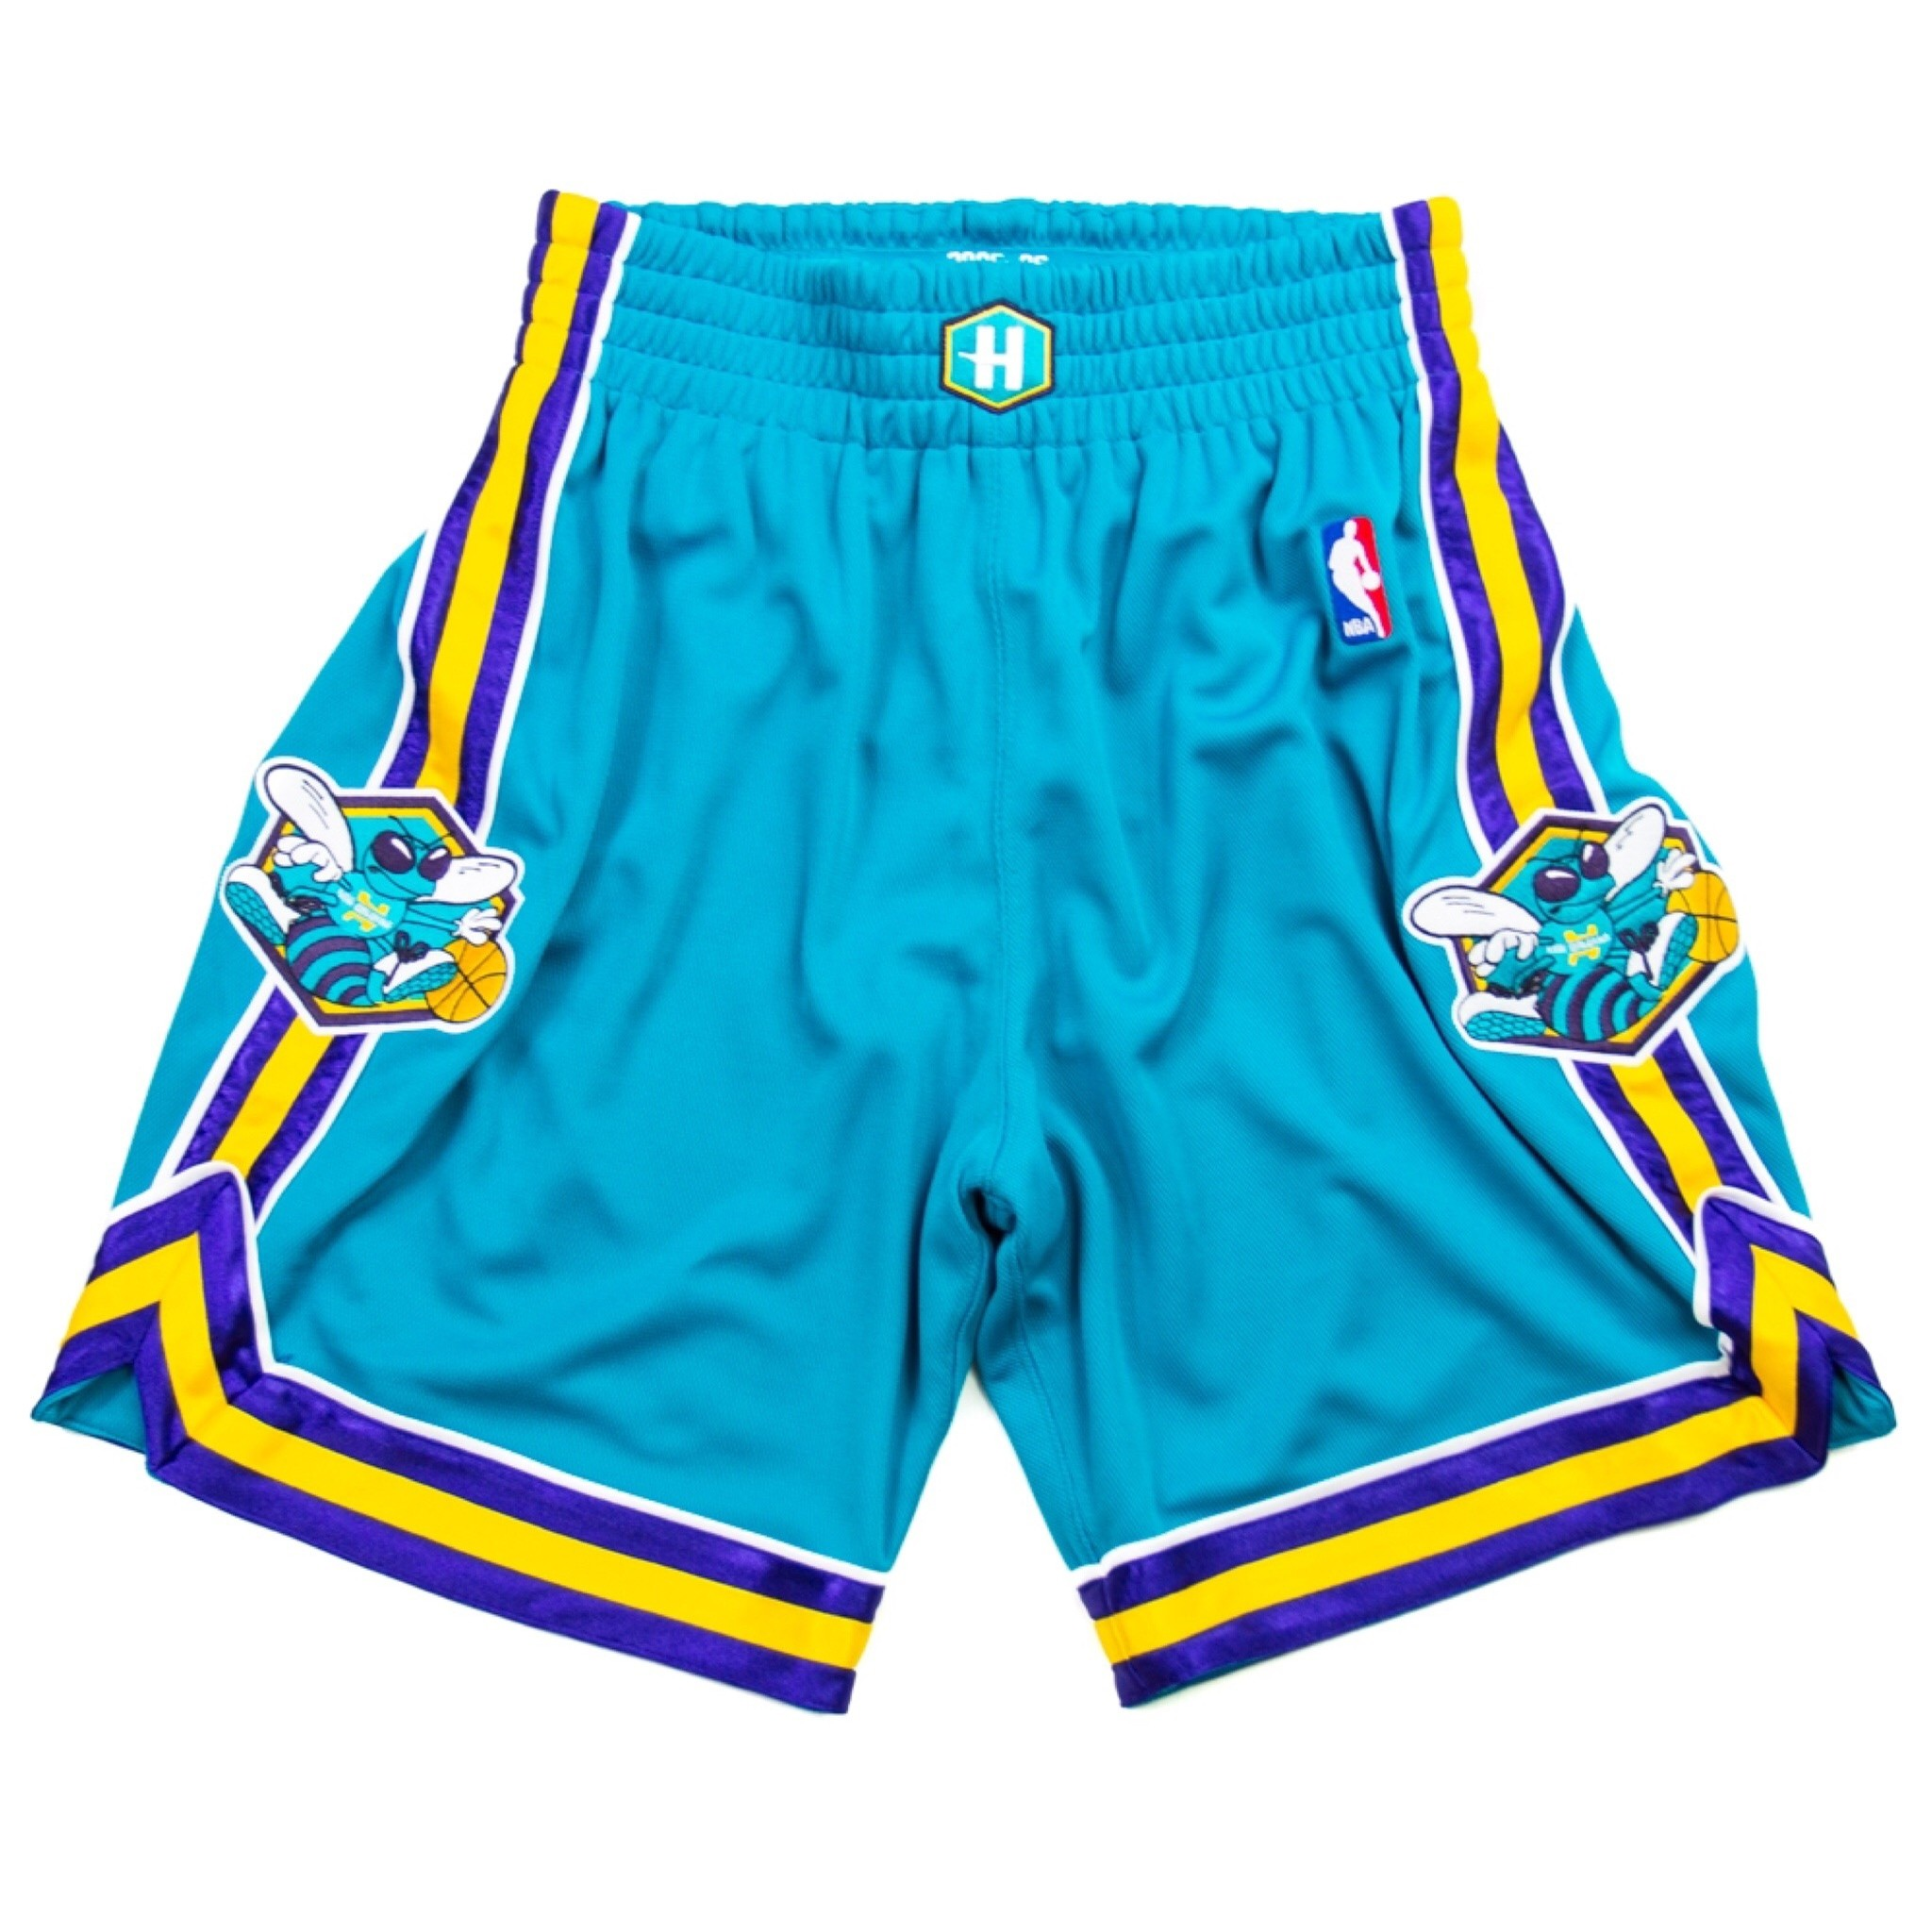 New Orleans Hornets 05-06 Authentic Short (Away)